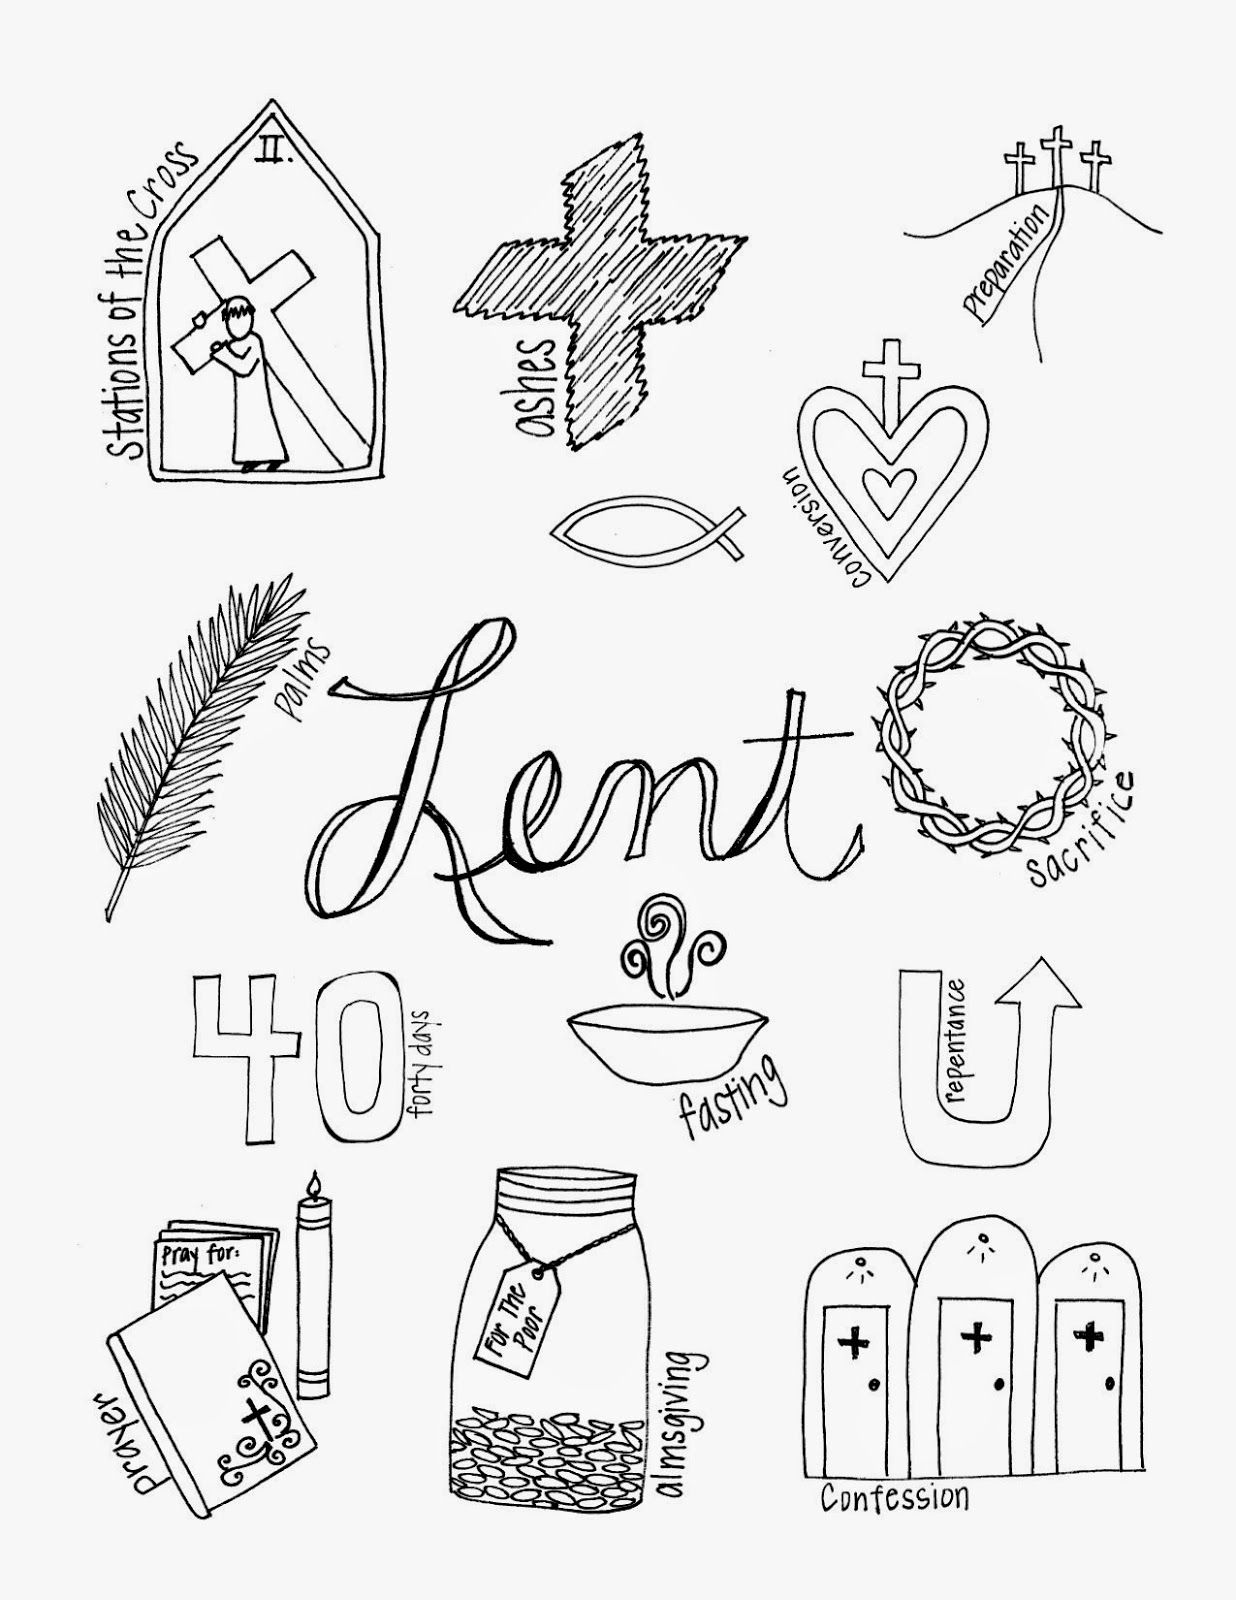 71ed6b358a1b0a98594b06b79dfde365 what lent looks like free printable with the signs and symbols of on signs please walk printable